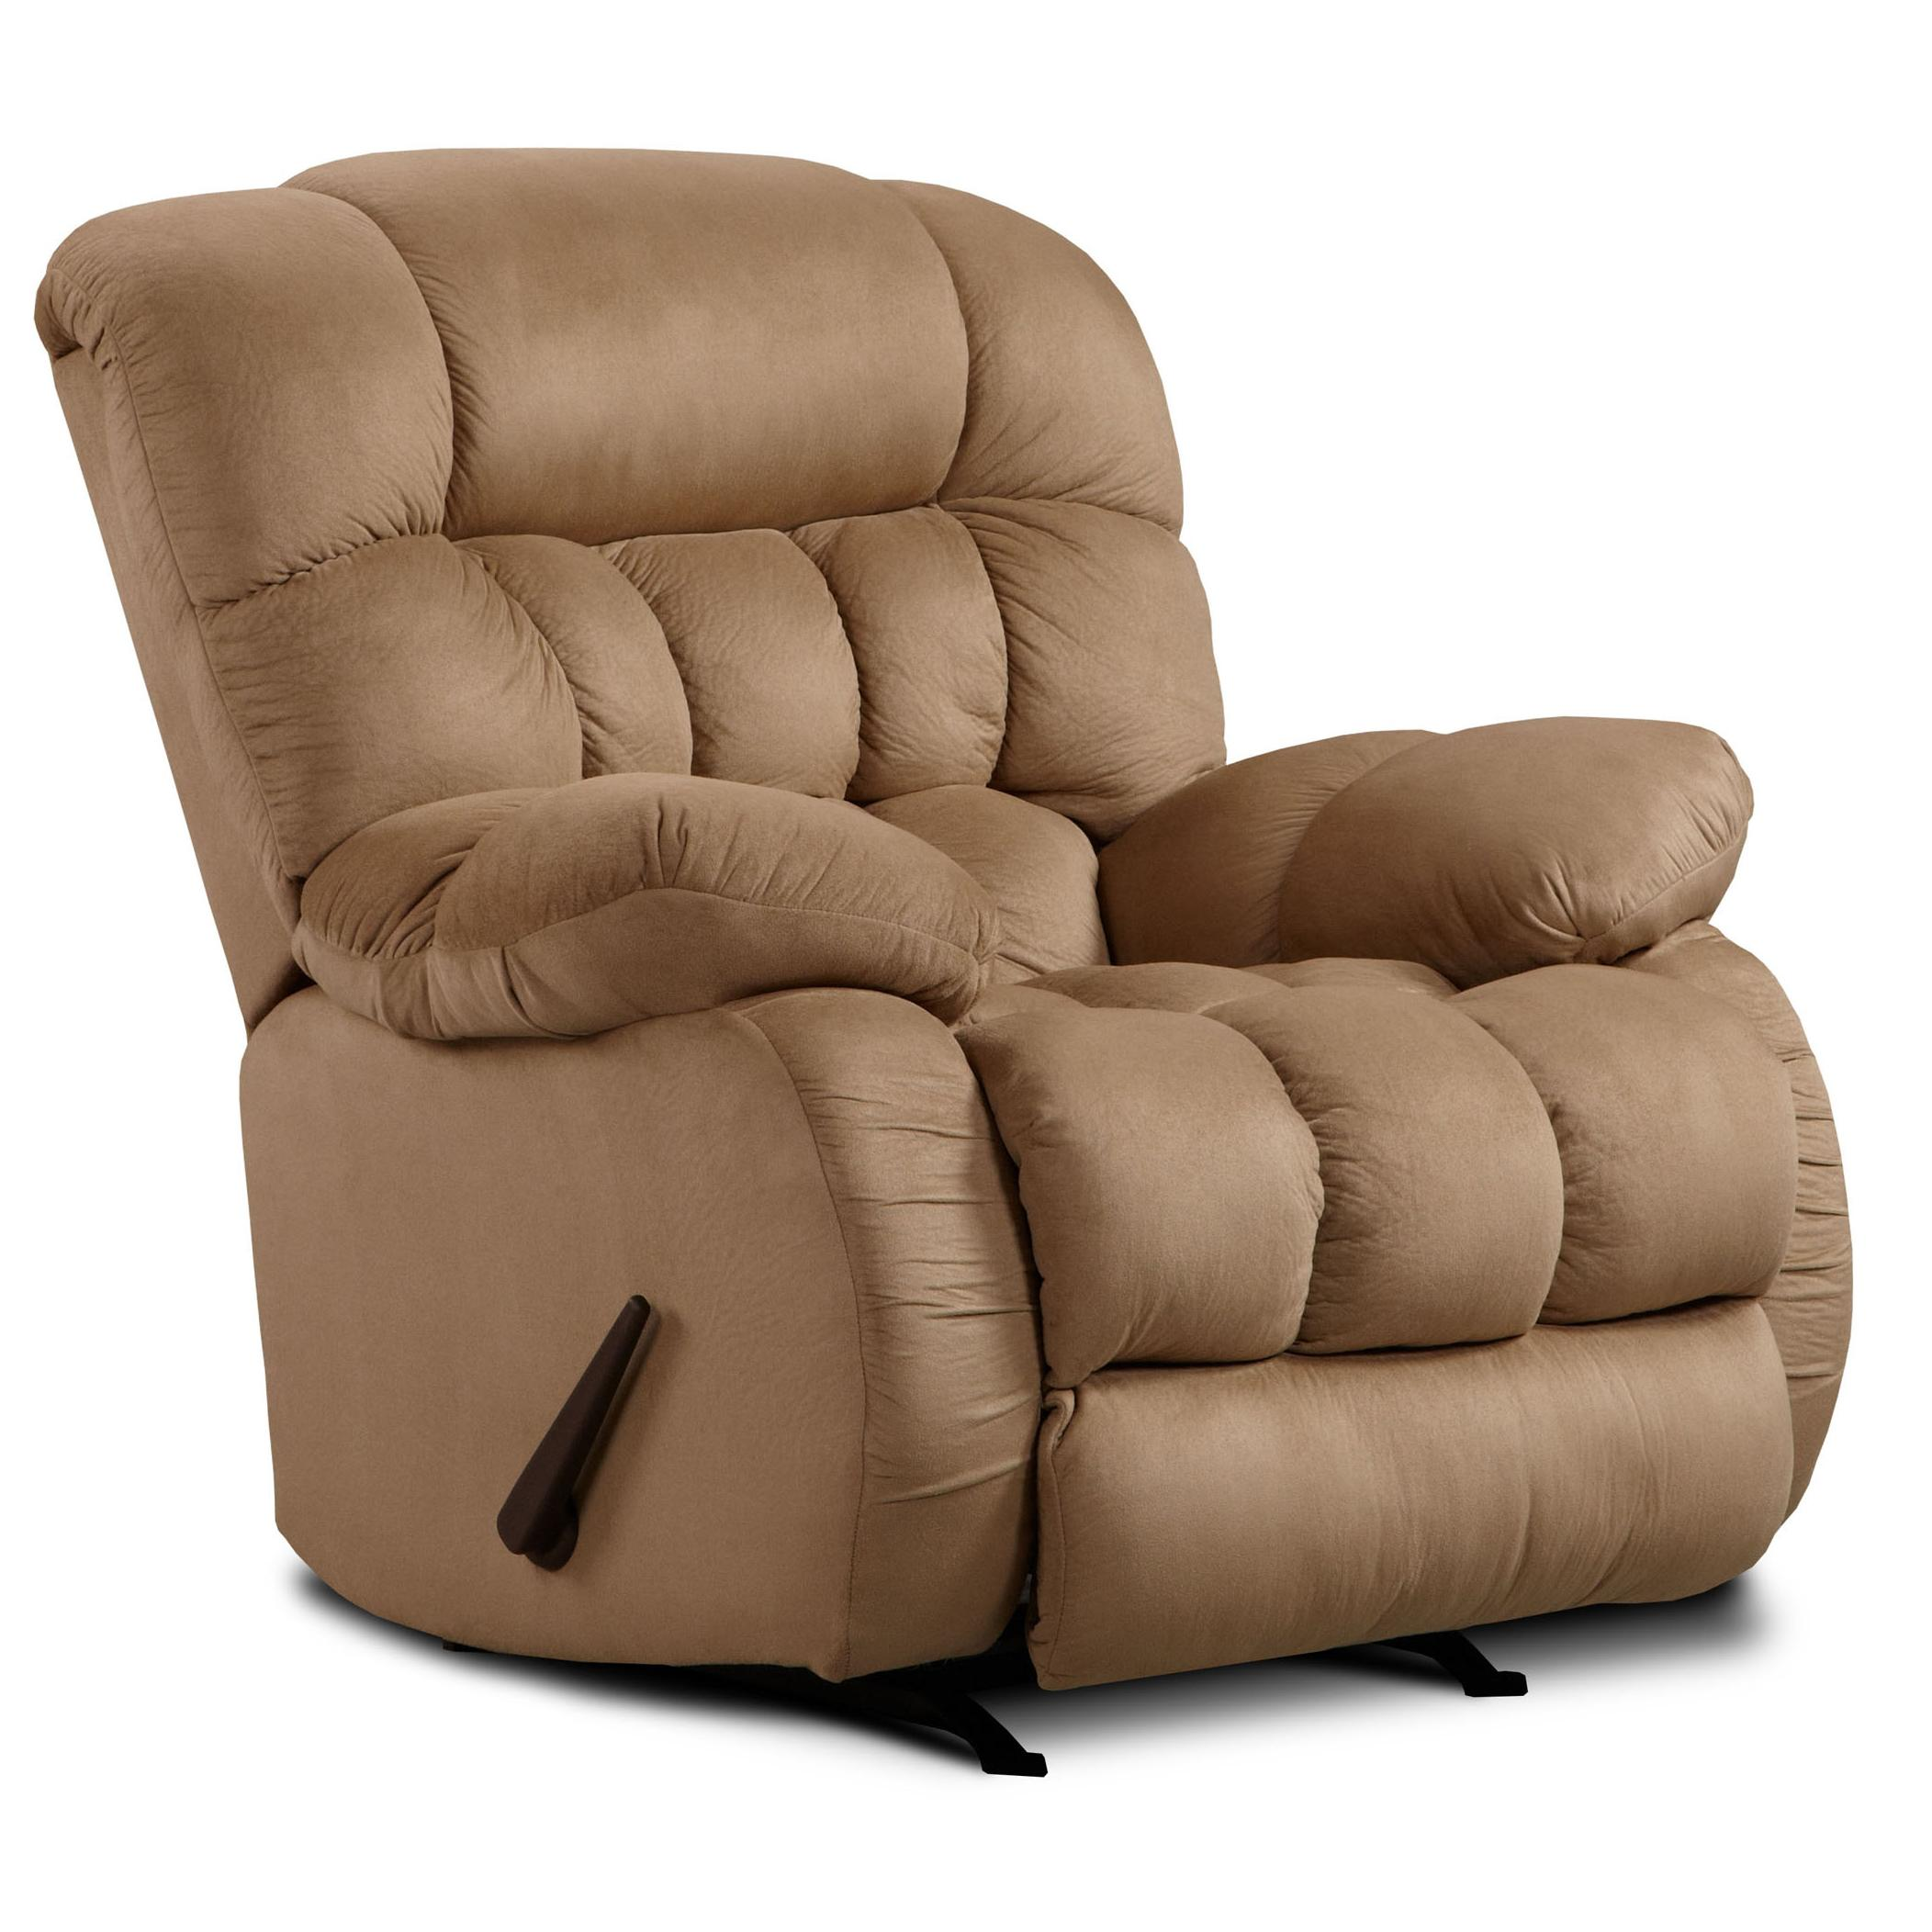 Washington Furniture 9200 Casual Recliner - Item Number: 9200 Taupe